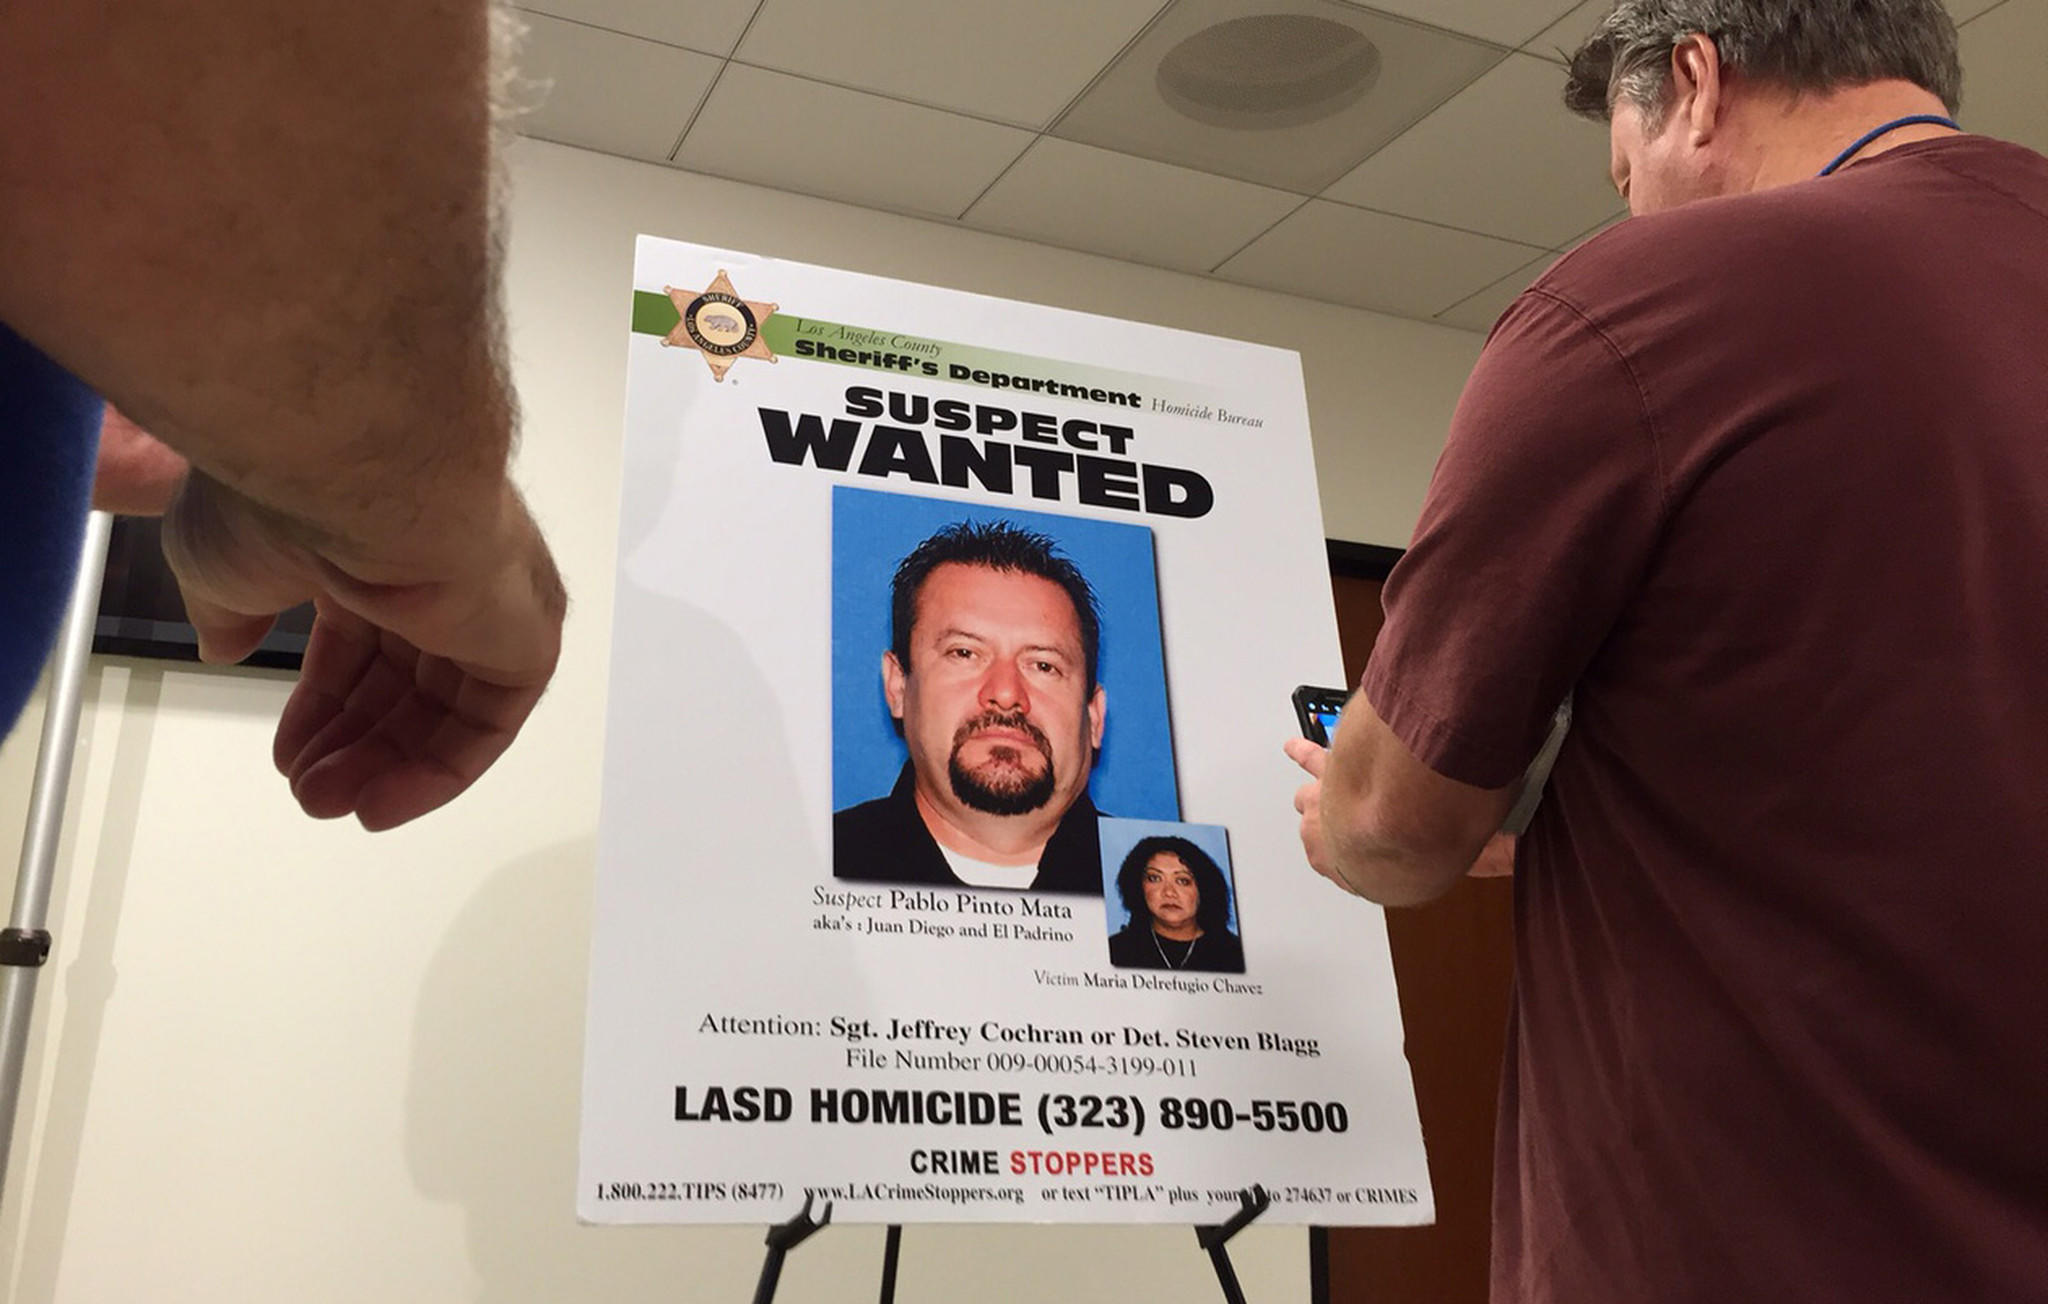 Wanted poster for Pablo Pinto Mata